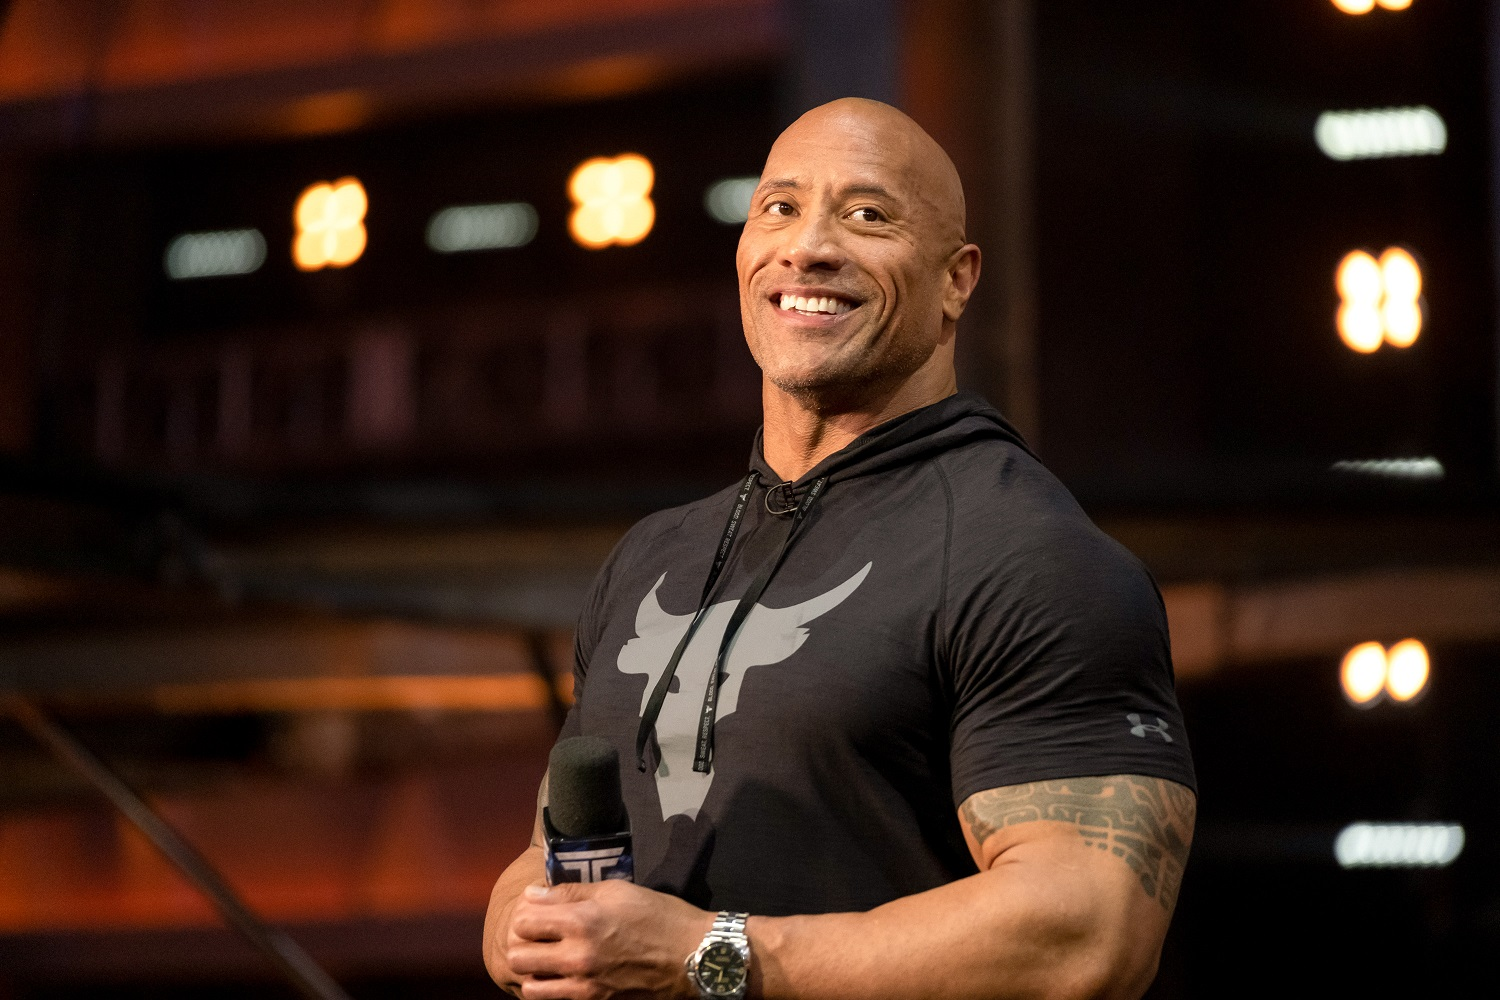 'The Rock' Dwayne Johnson